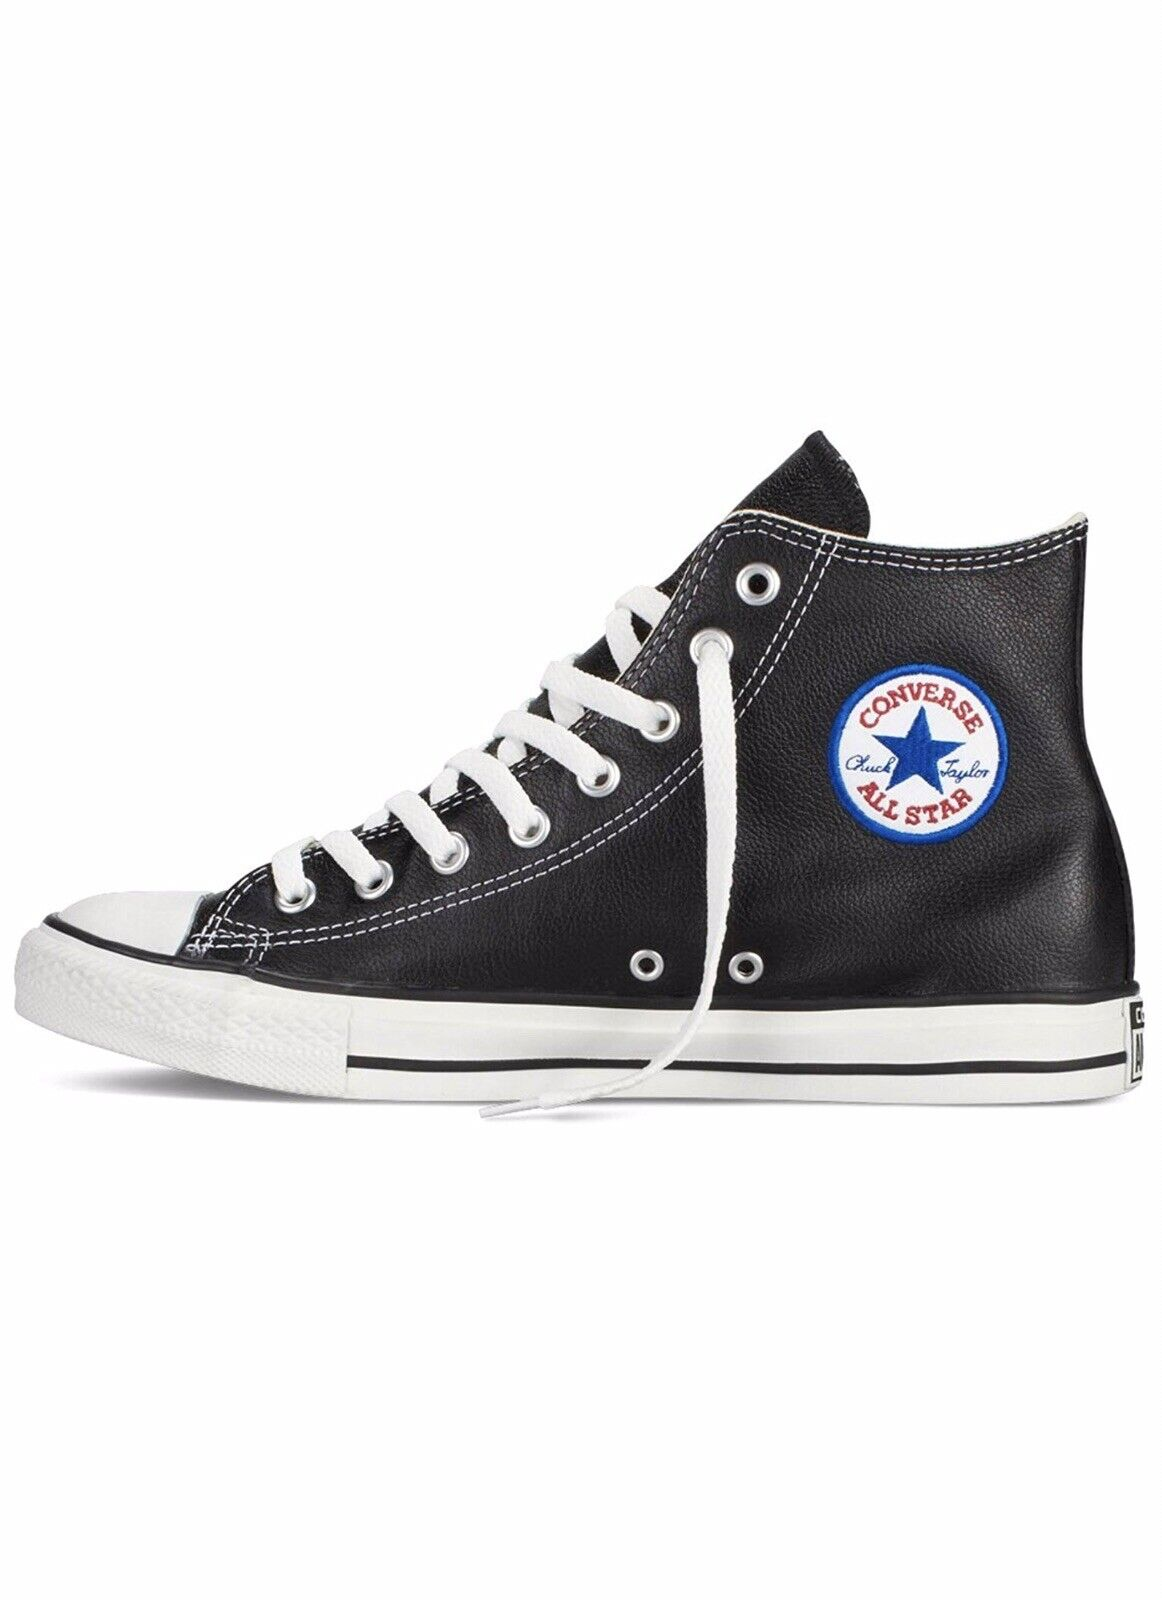 Converse Chuck Taylor All Star Chaussures Hi-CUIR NOIR-HOMME Taille 9.5 US